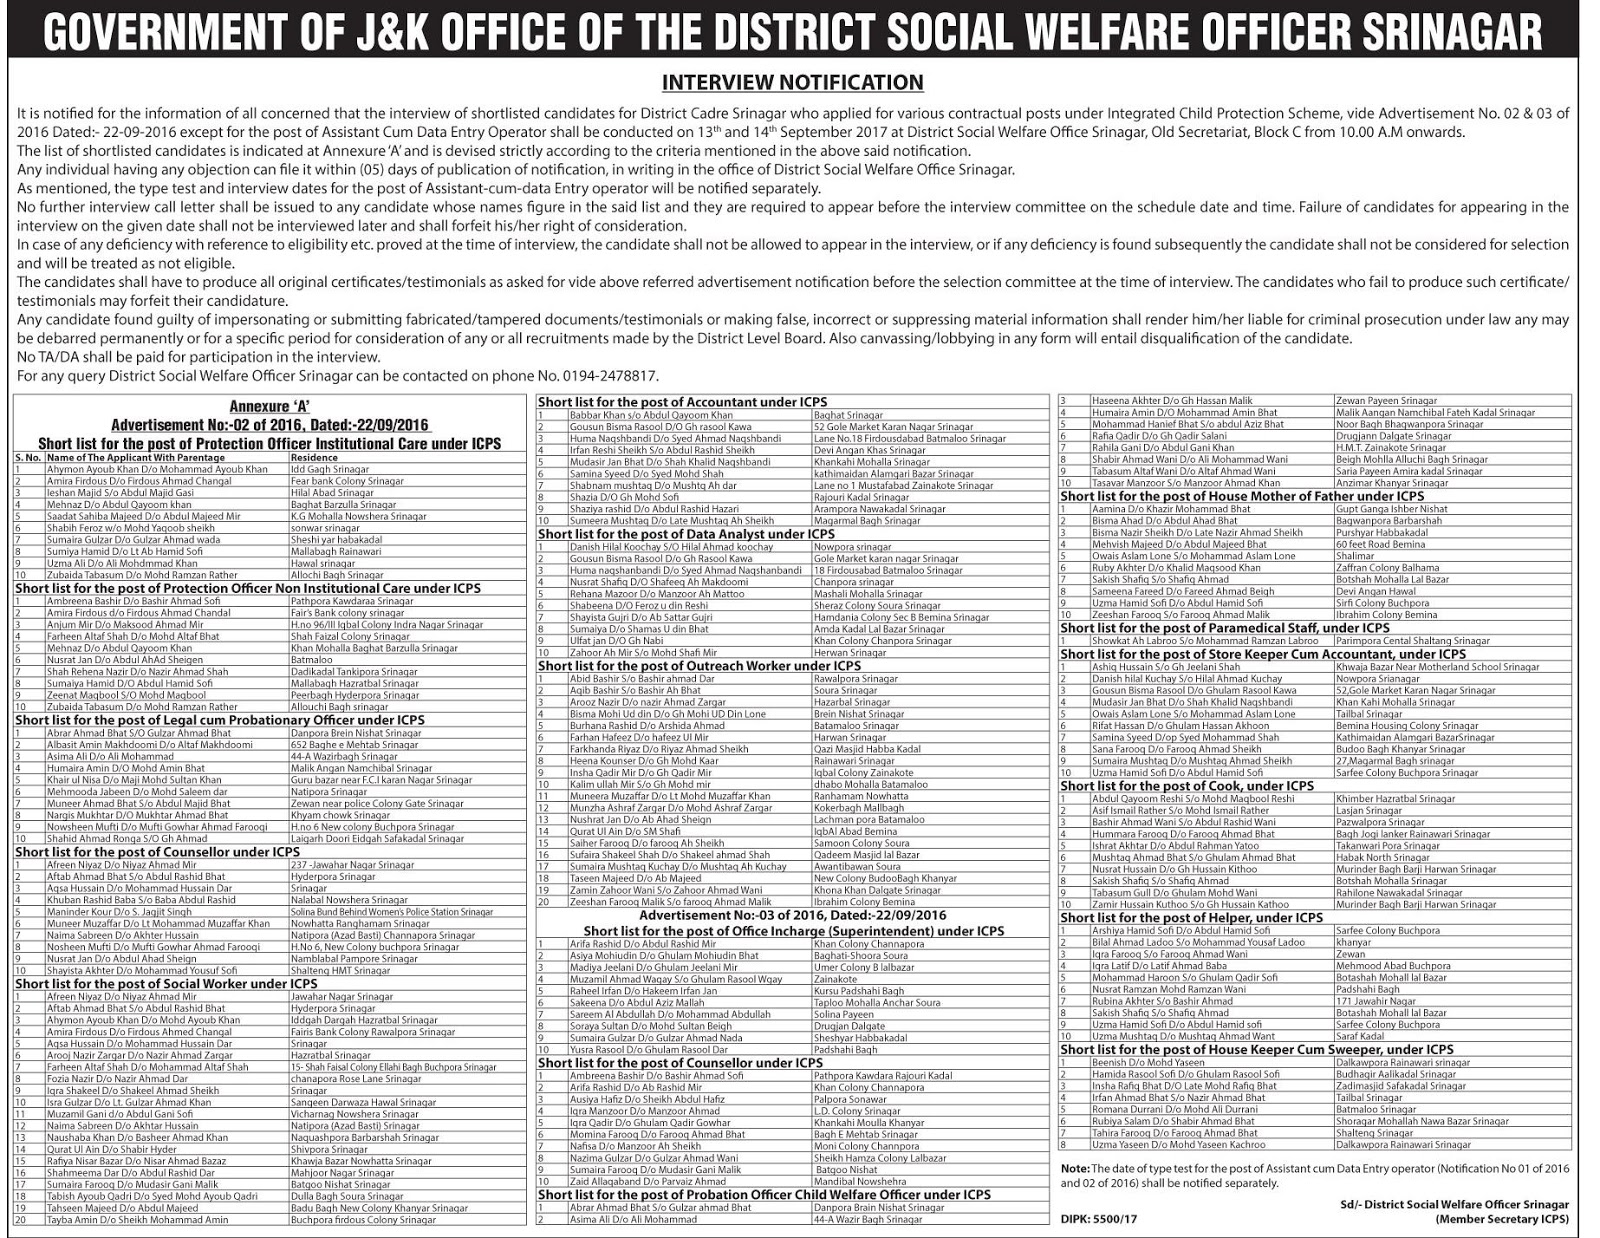 Interview Notification for shortlisted candidates under ICPS, Social Welfare Srinagar